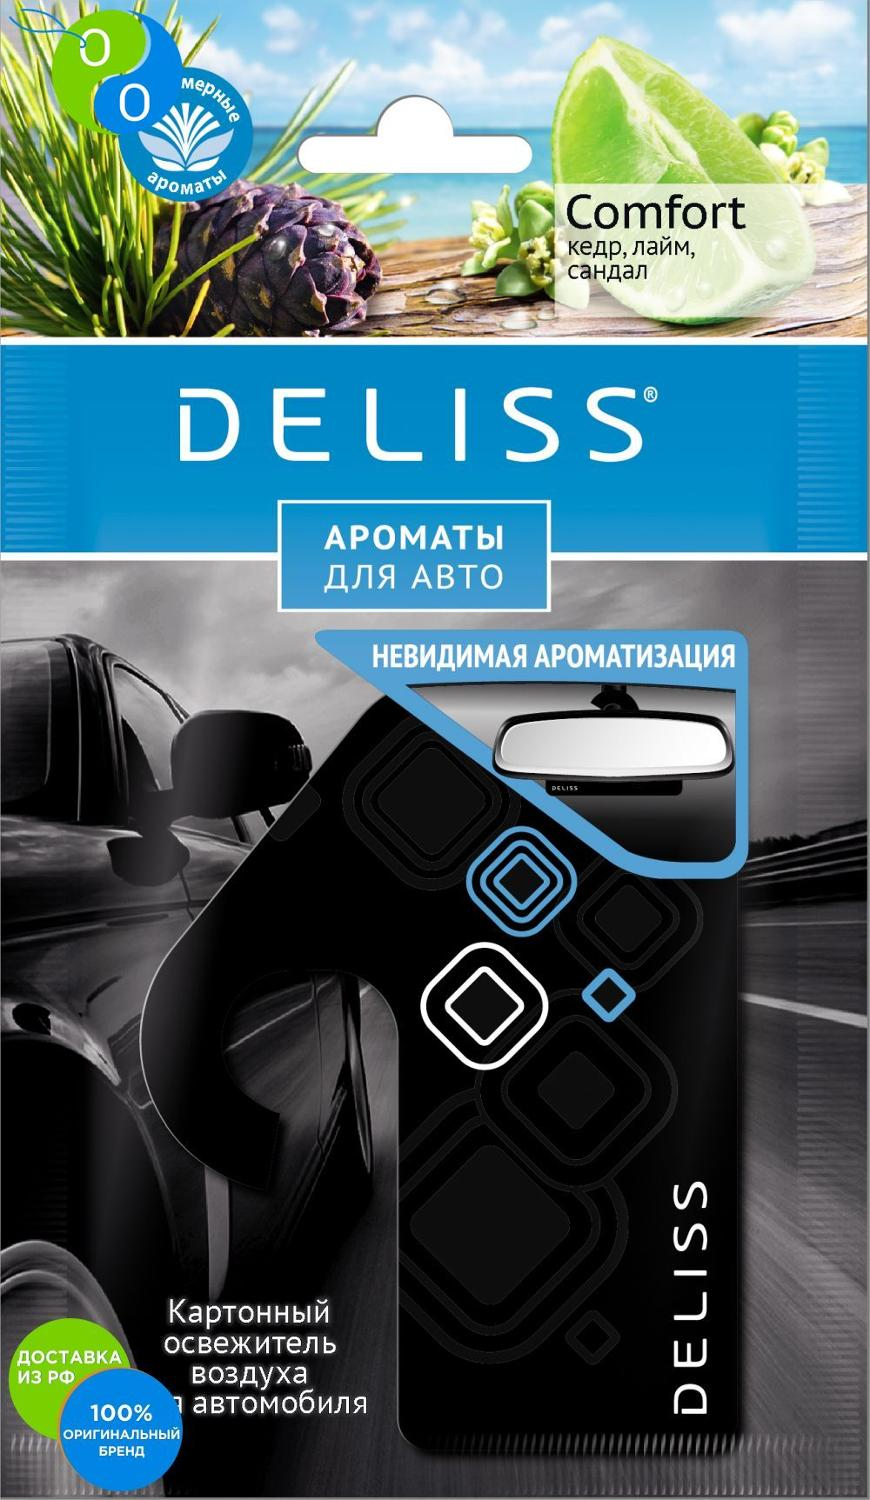 Cardboard DELISS car air freshener for Comfort,delis, deliss, dilis, flavor, in a machine Delis, Deliss, diliss, herringbone to machine smell in the car, the car sachet